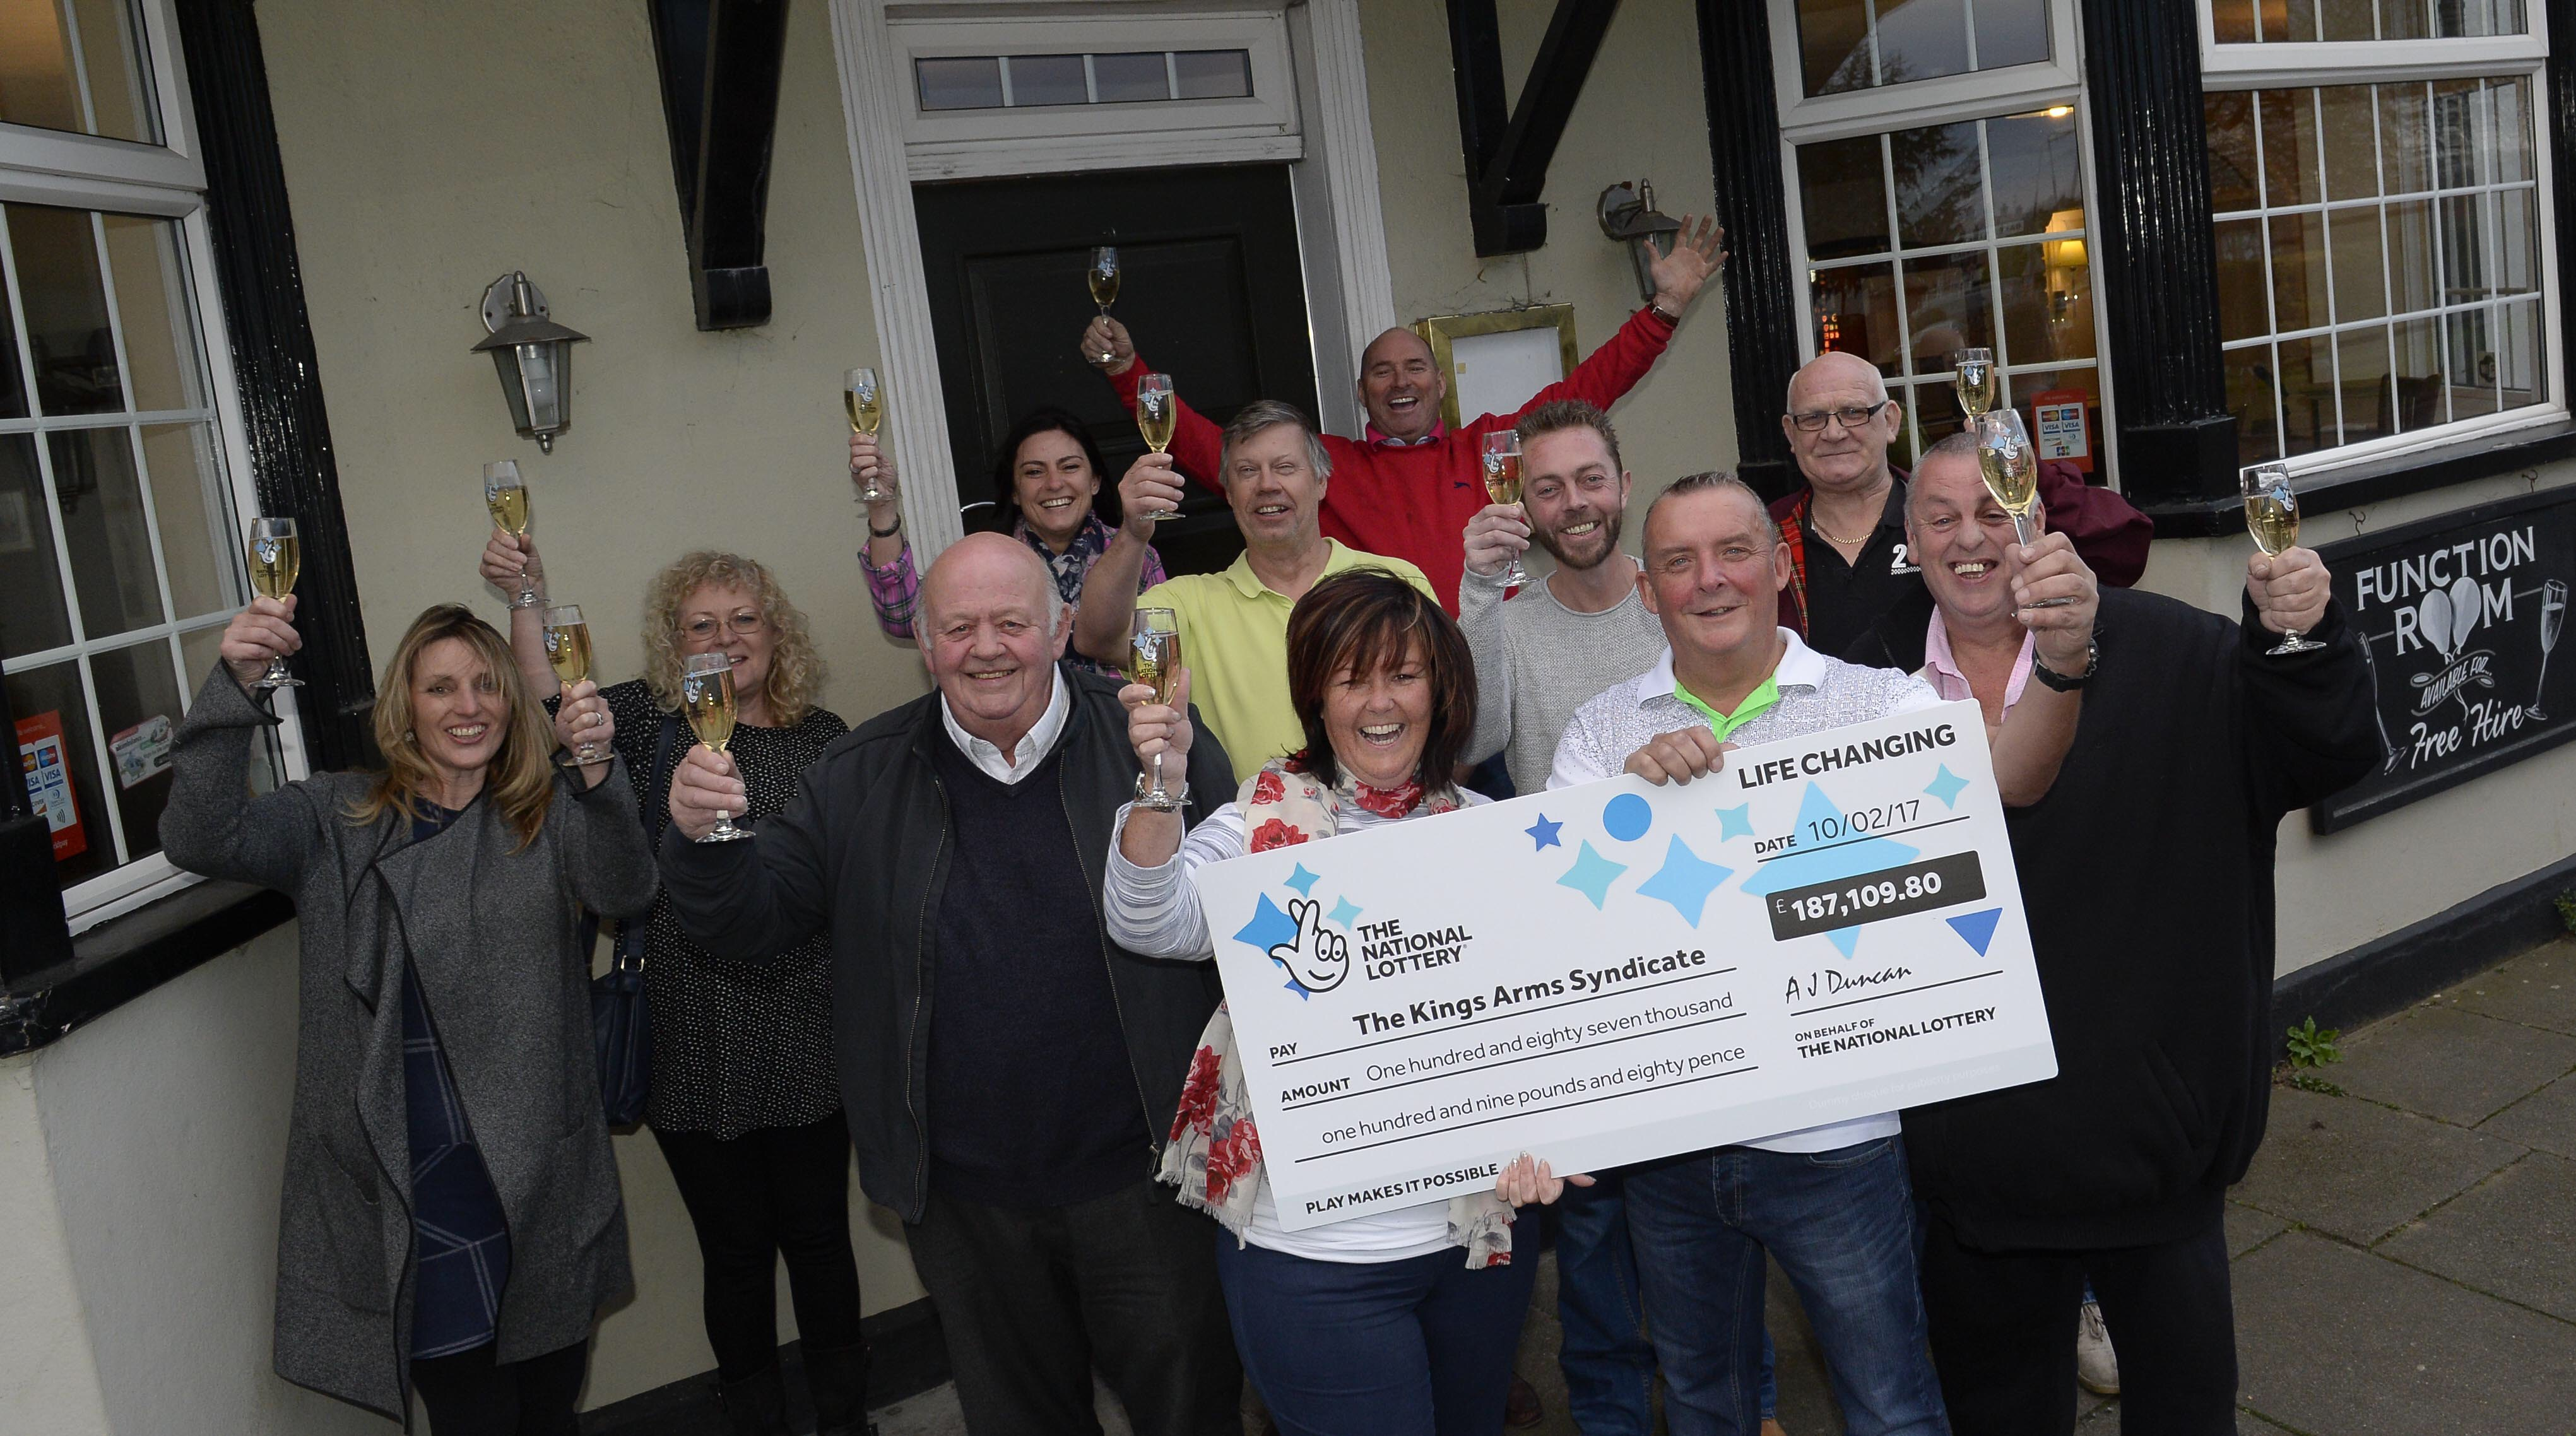 Essex EuroMillions syndicate winners